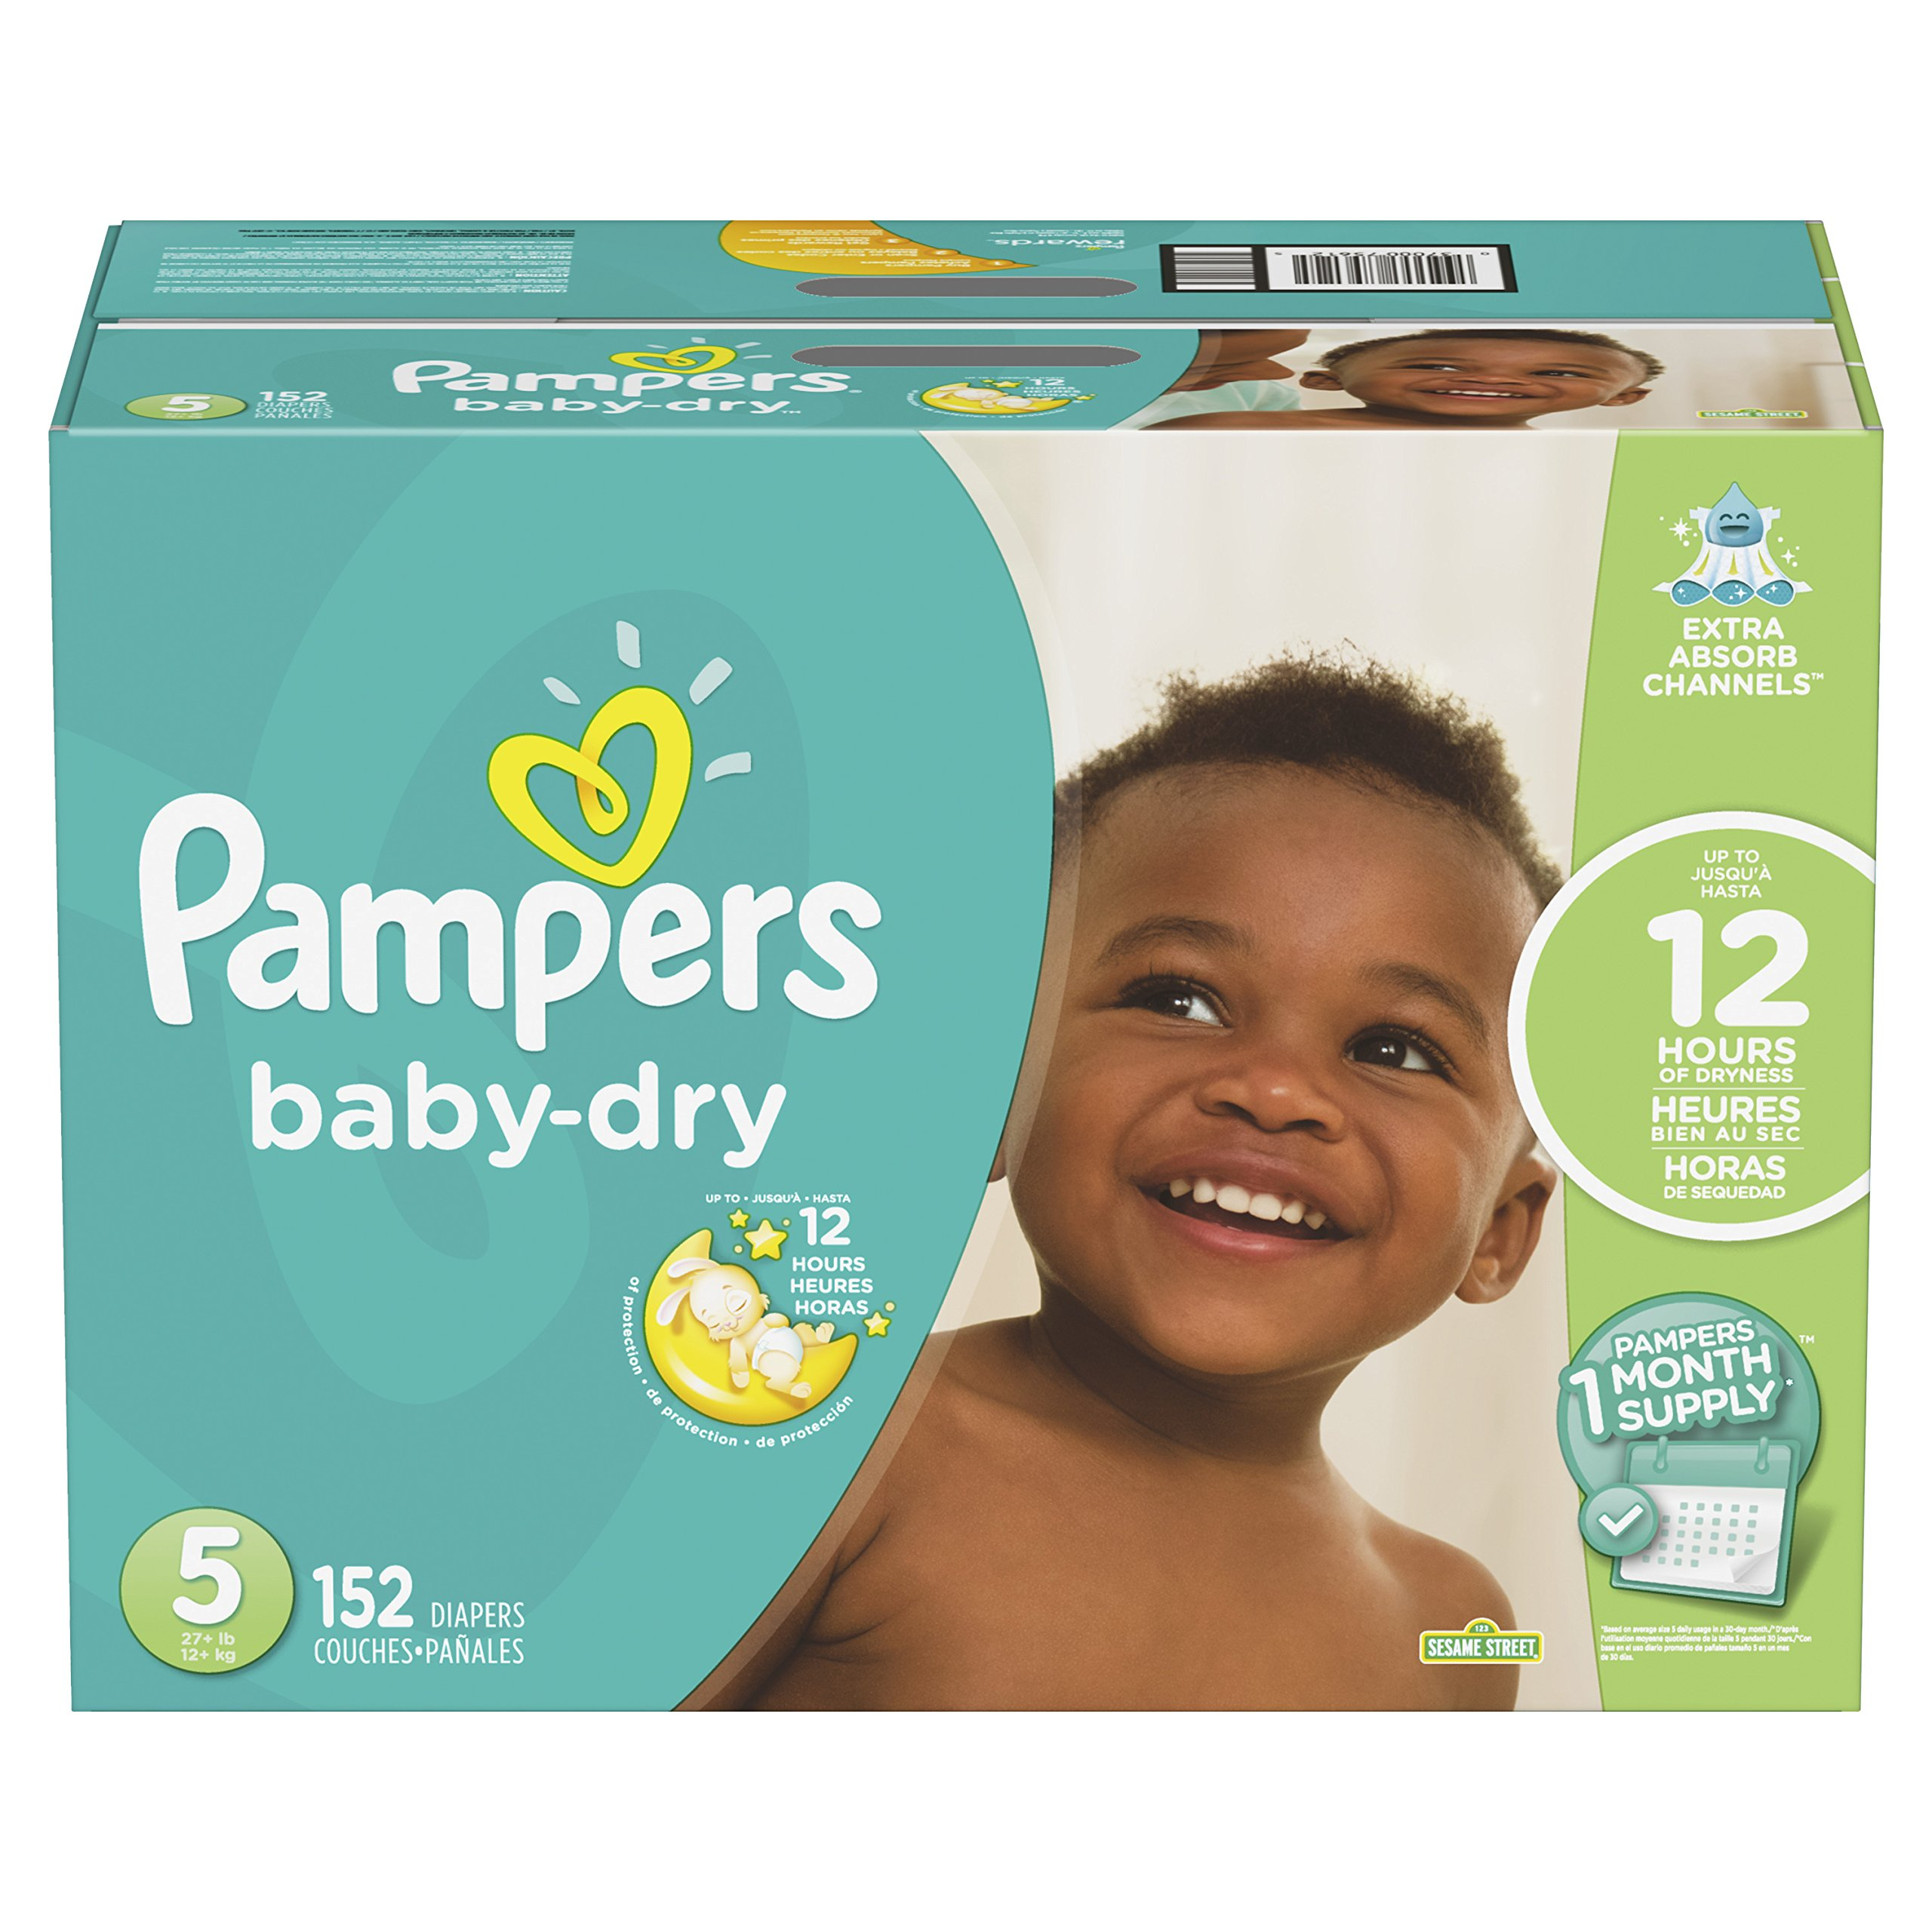 Pampers Baby-Dry Disposable Diapers Size 5, 152 Count, ONE Month Supply